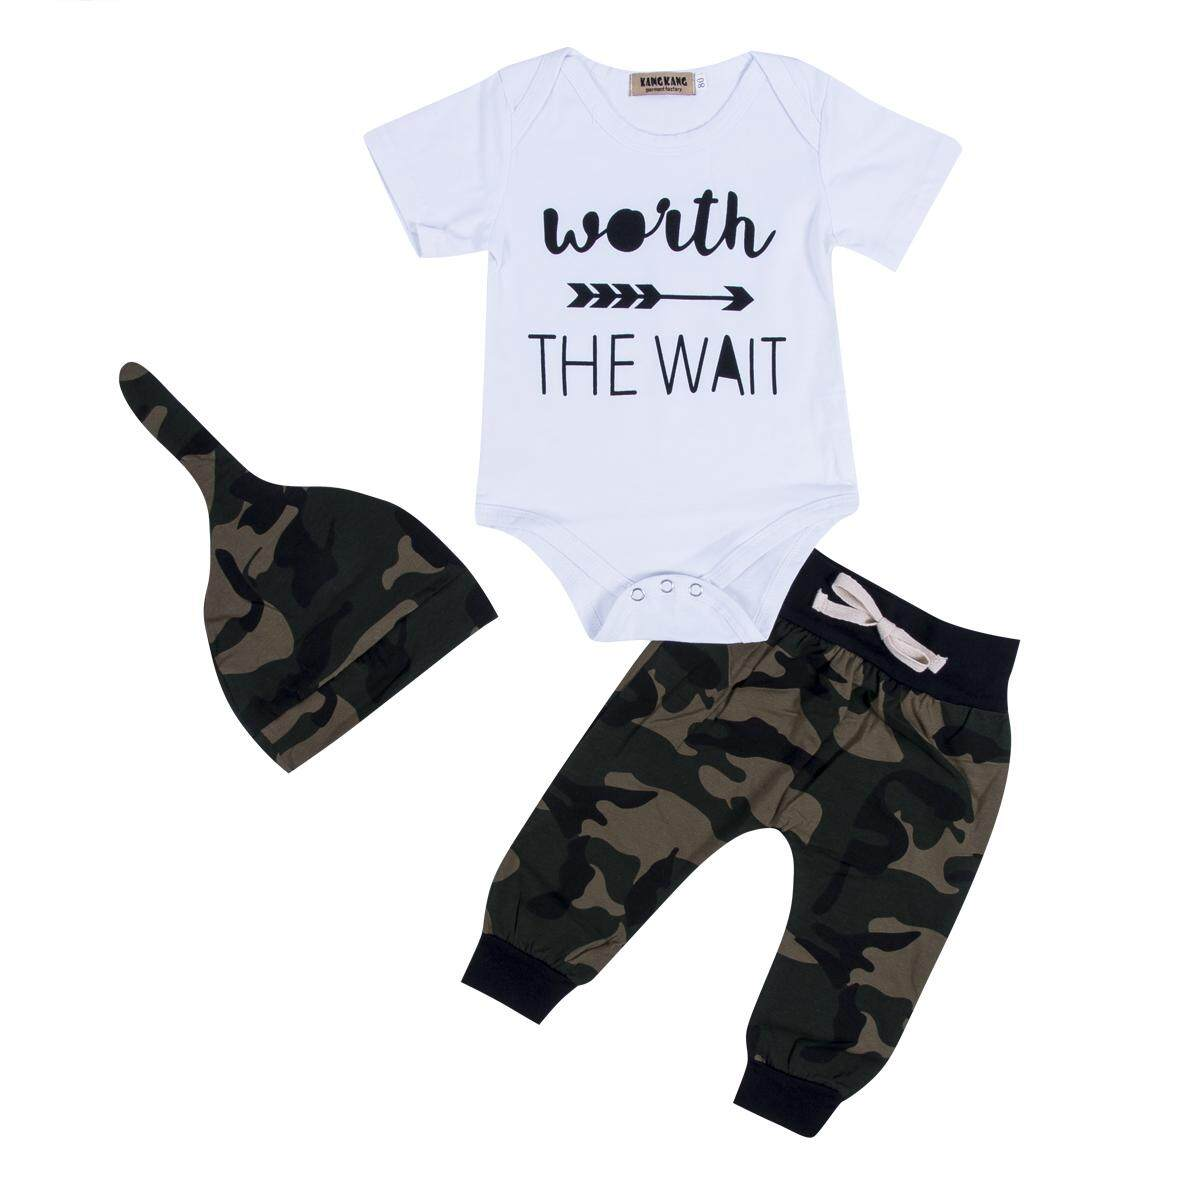 516033e68f619 Camouflage Newborn Toddler Baby Boys Clothes Romper Bodysuit + Pants  Outfits Set